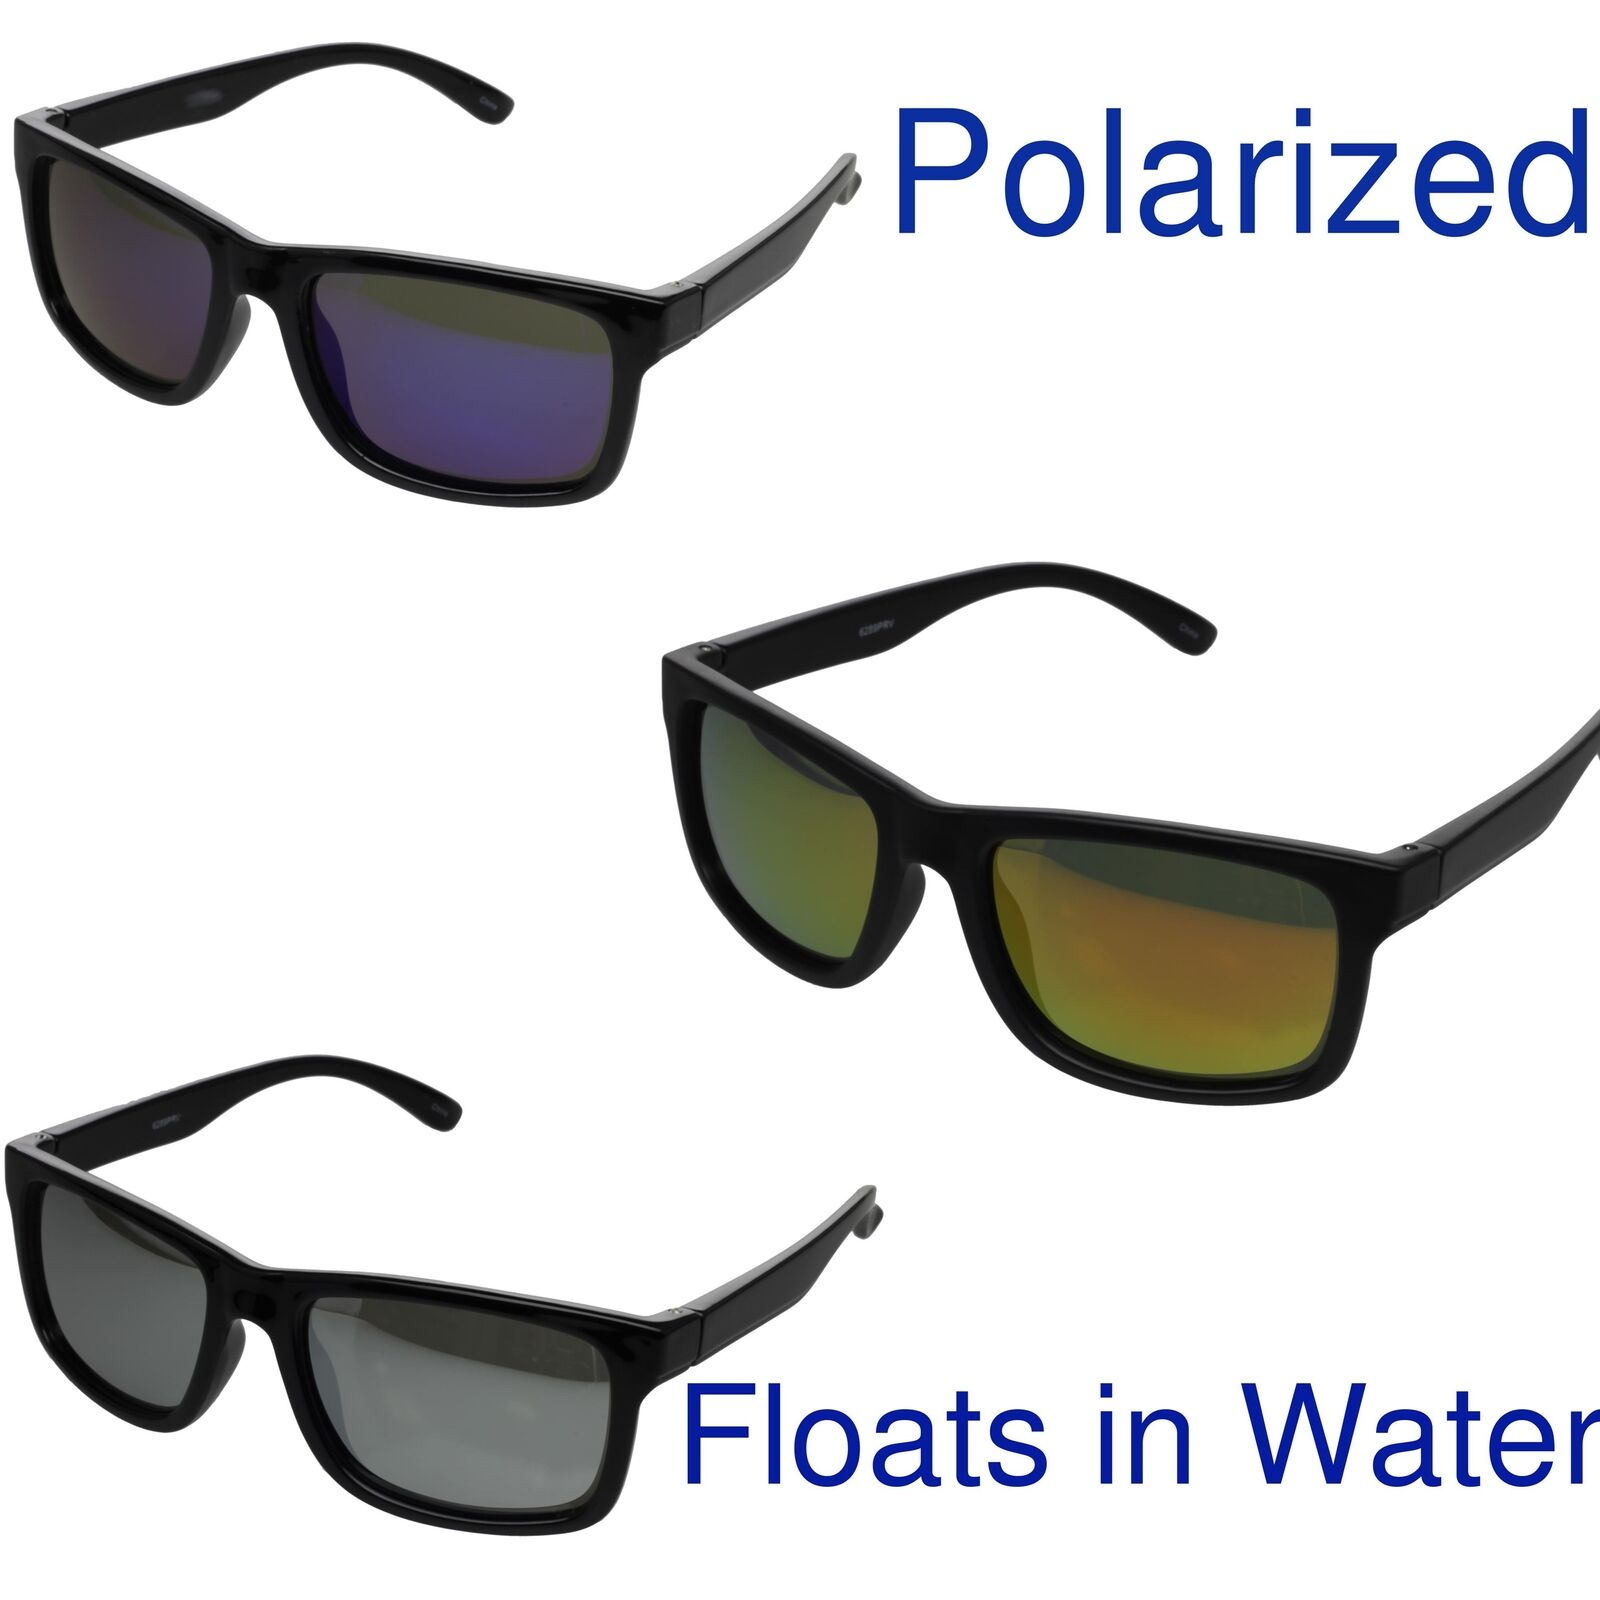 13cf0b5a8c Details about Floating Frame Polarized Sunglasses Fishing Water Sport  Boating Black Unisex